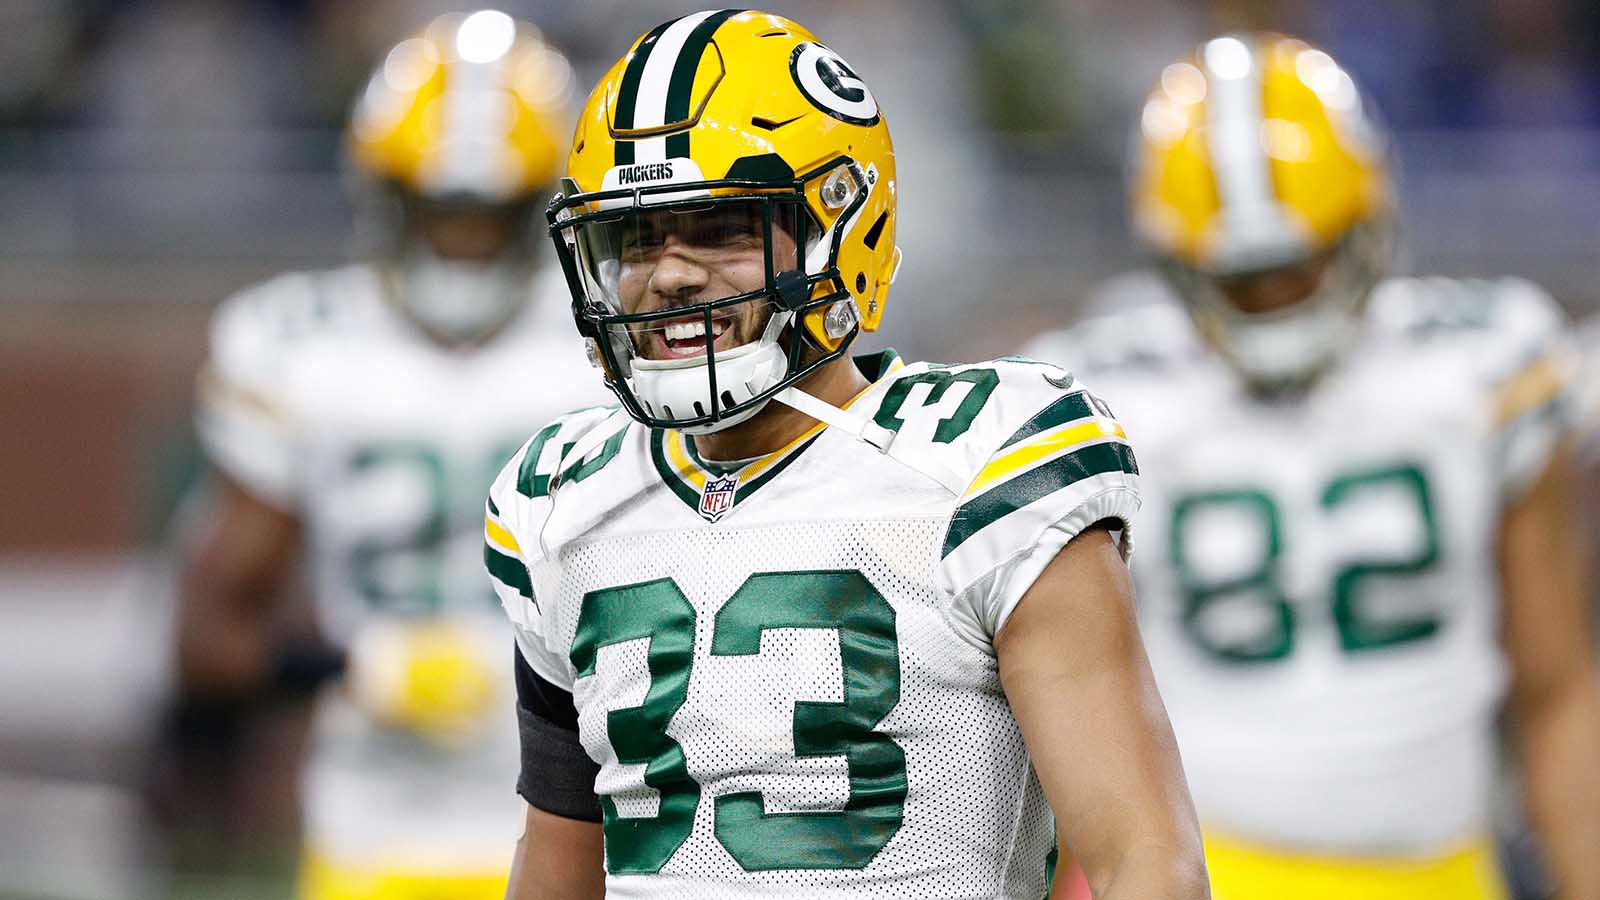 Jan 1, 2017; Detroit, MI, USA; Green Bay Packers strong safety Micah Hyde (33) smiles before the game against the Detroit Lions at Ford Field. Packers won 31-24. Mandatory Credit: Raj Mehta-USA TODAY Sports